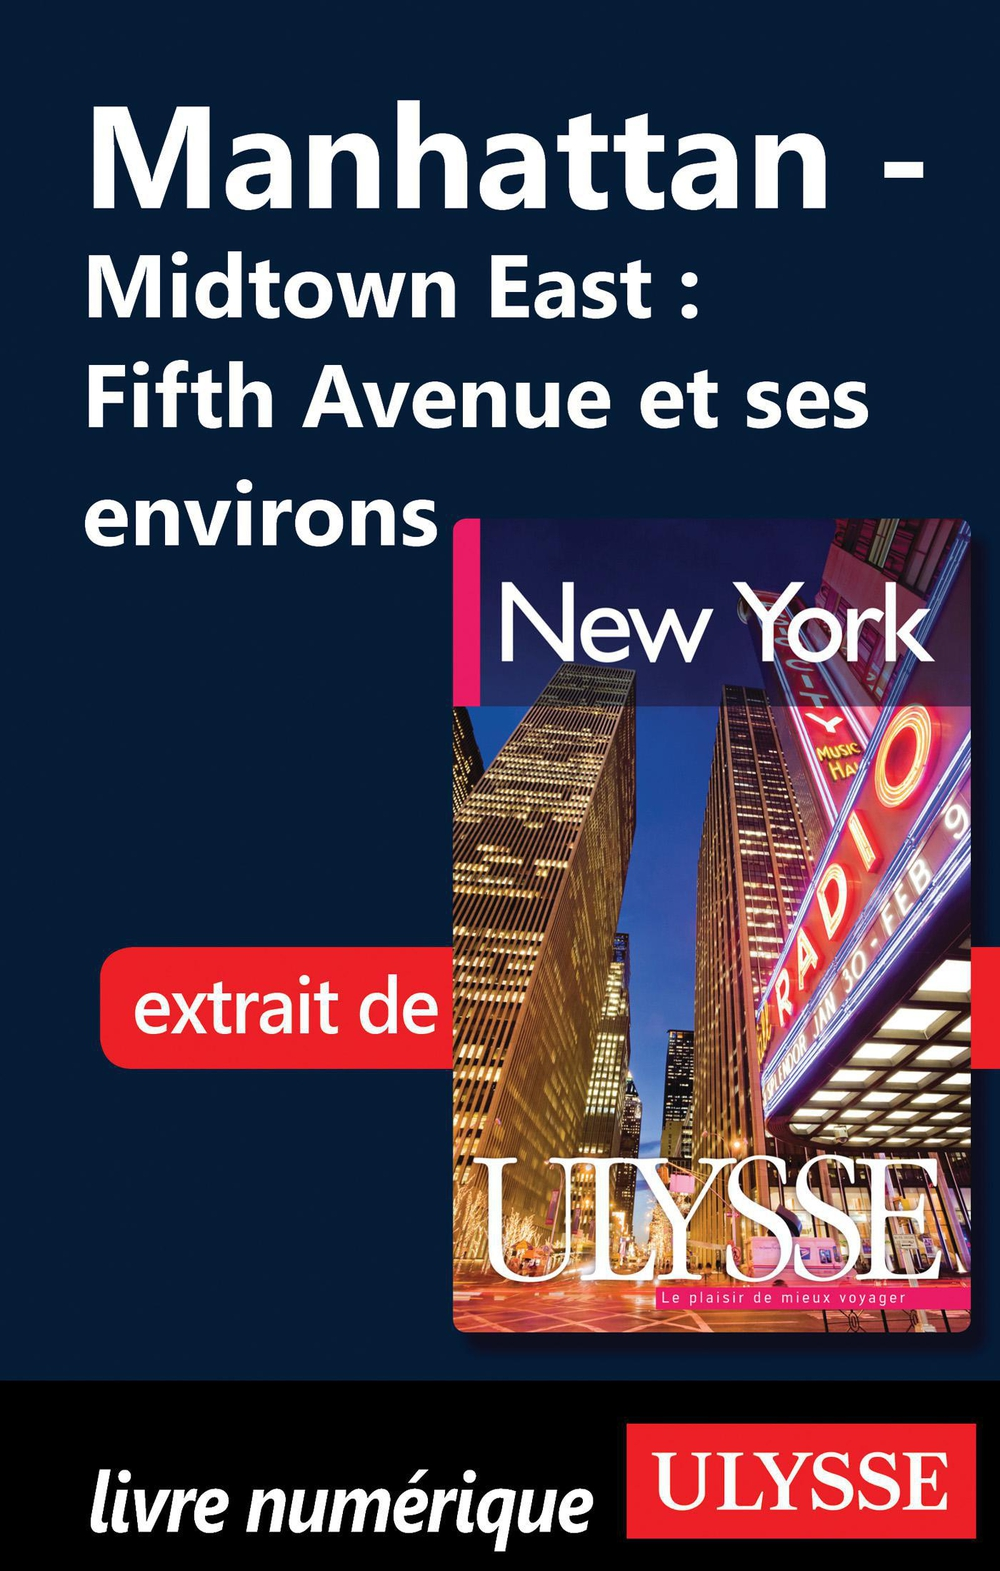 Manhattan - Midtown East : Fifth Avenue et ses environs